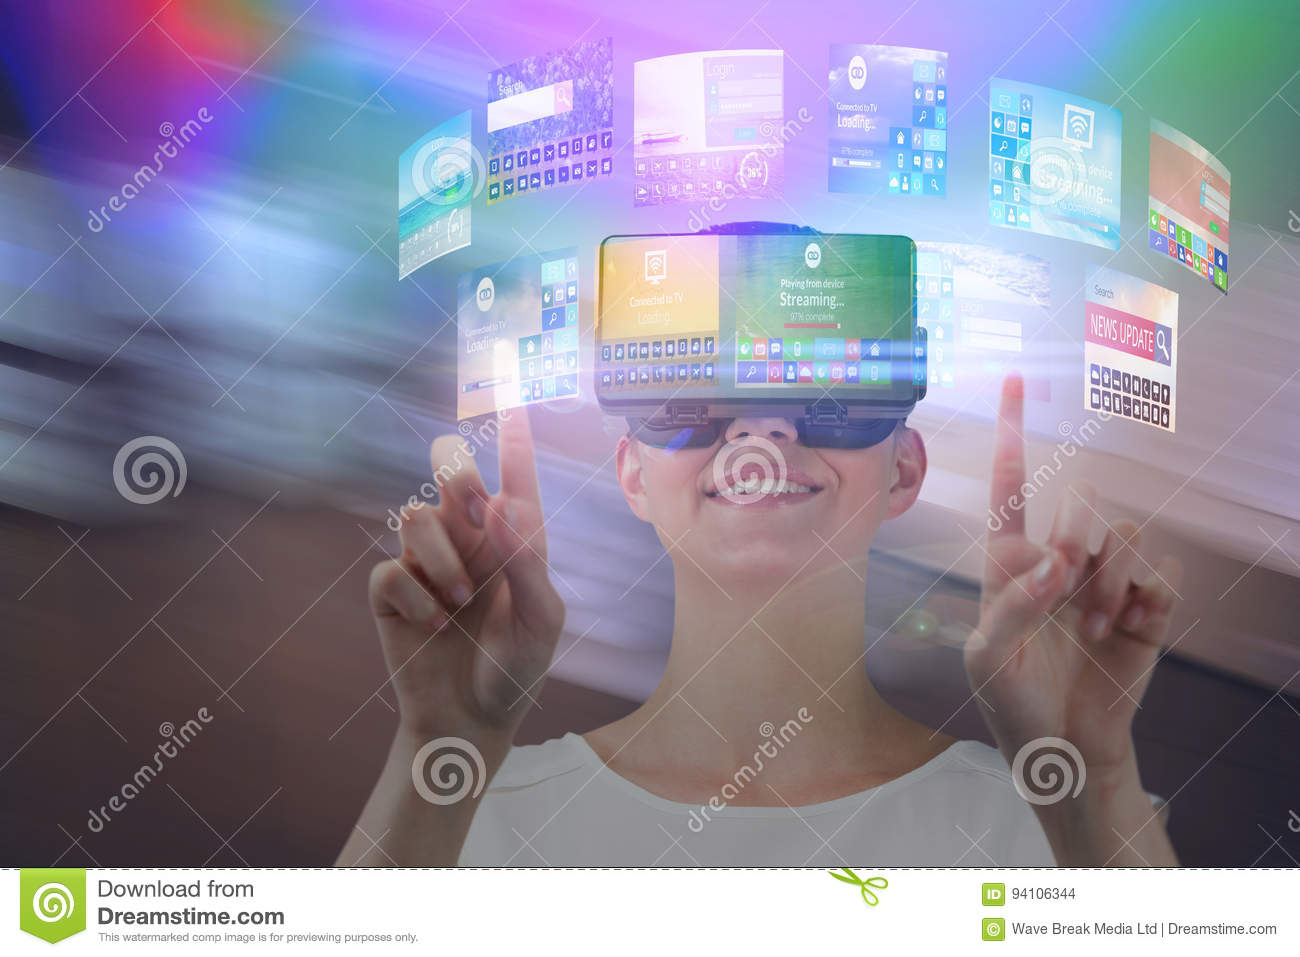 Composite image of happy woman pointing upwards while using virtual reality headset